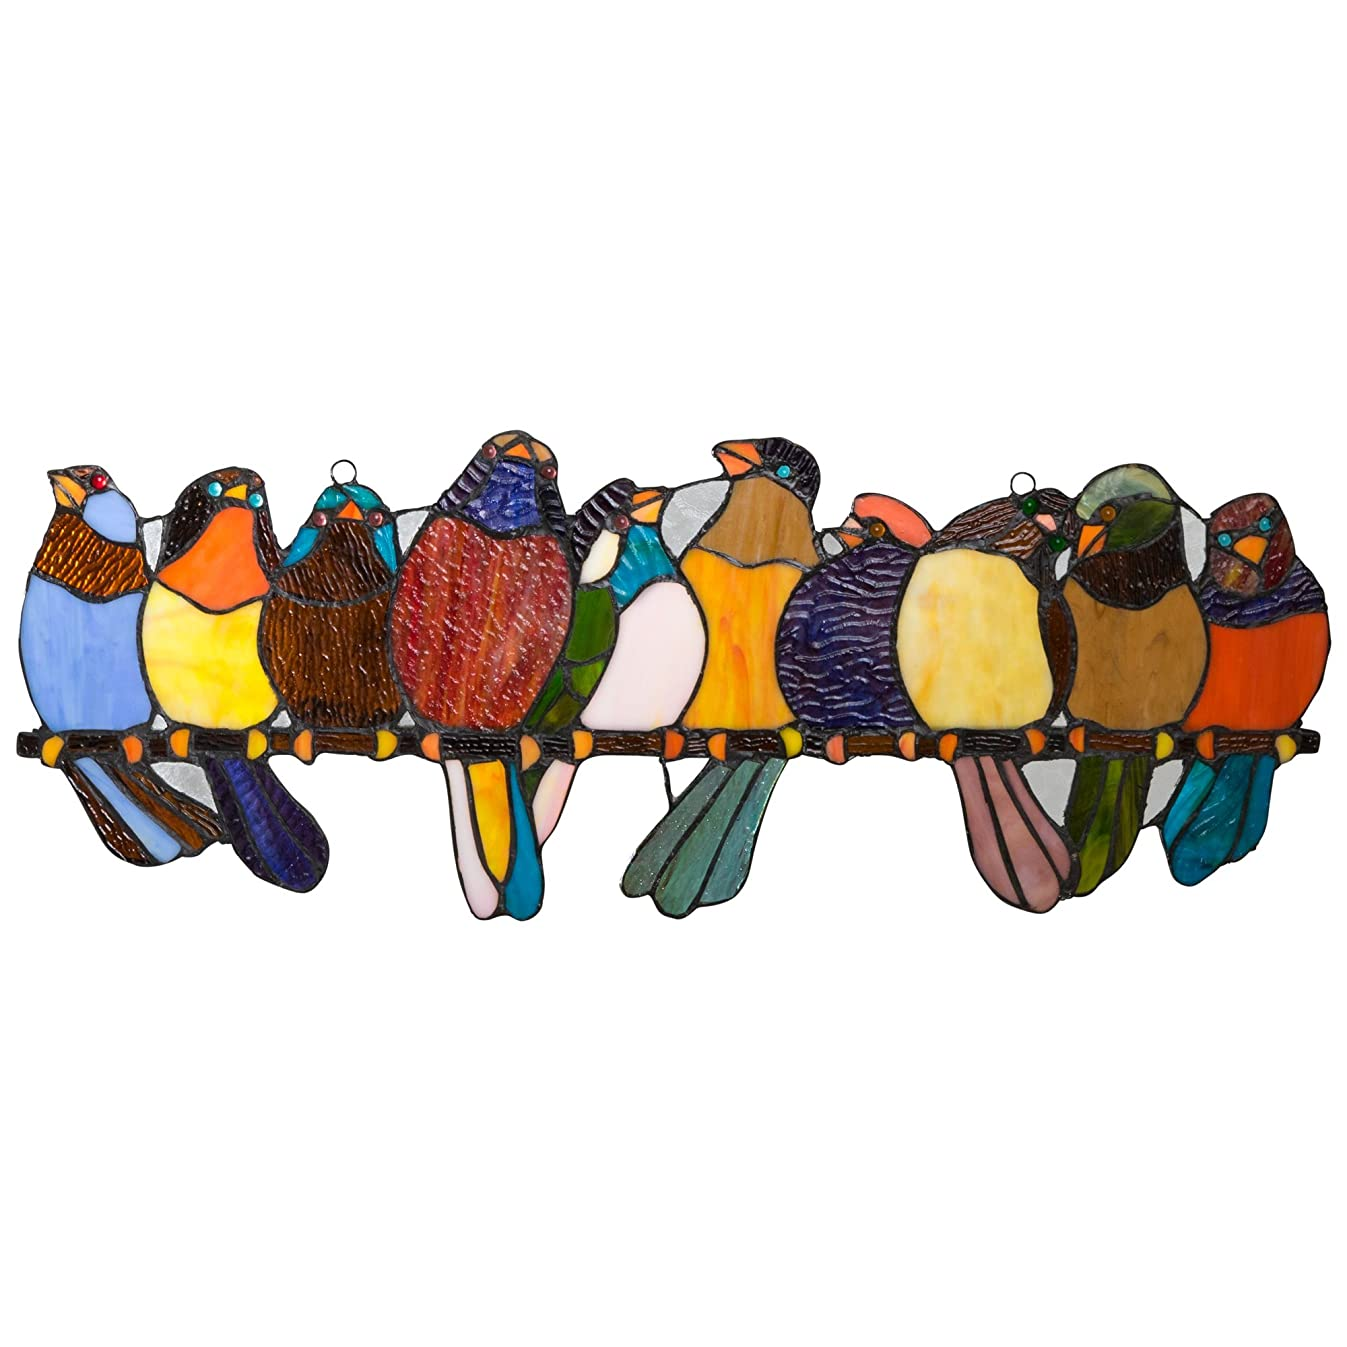 River of Goods Bird Suncatcher: Stained Glass Birds on a Wire Hanging Sun Catcher Window Panels